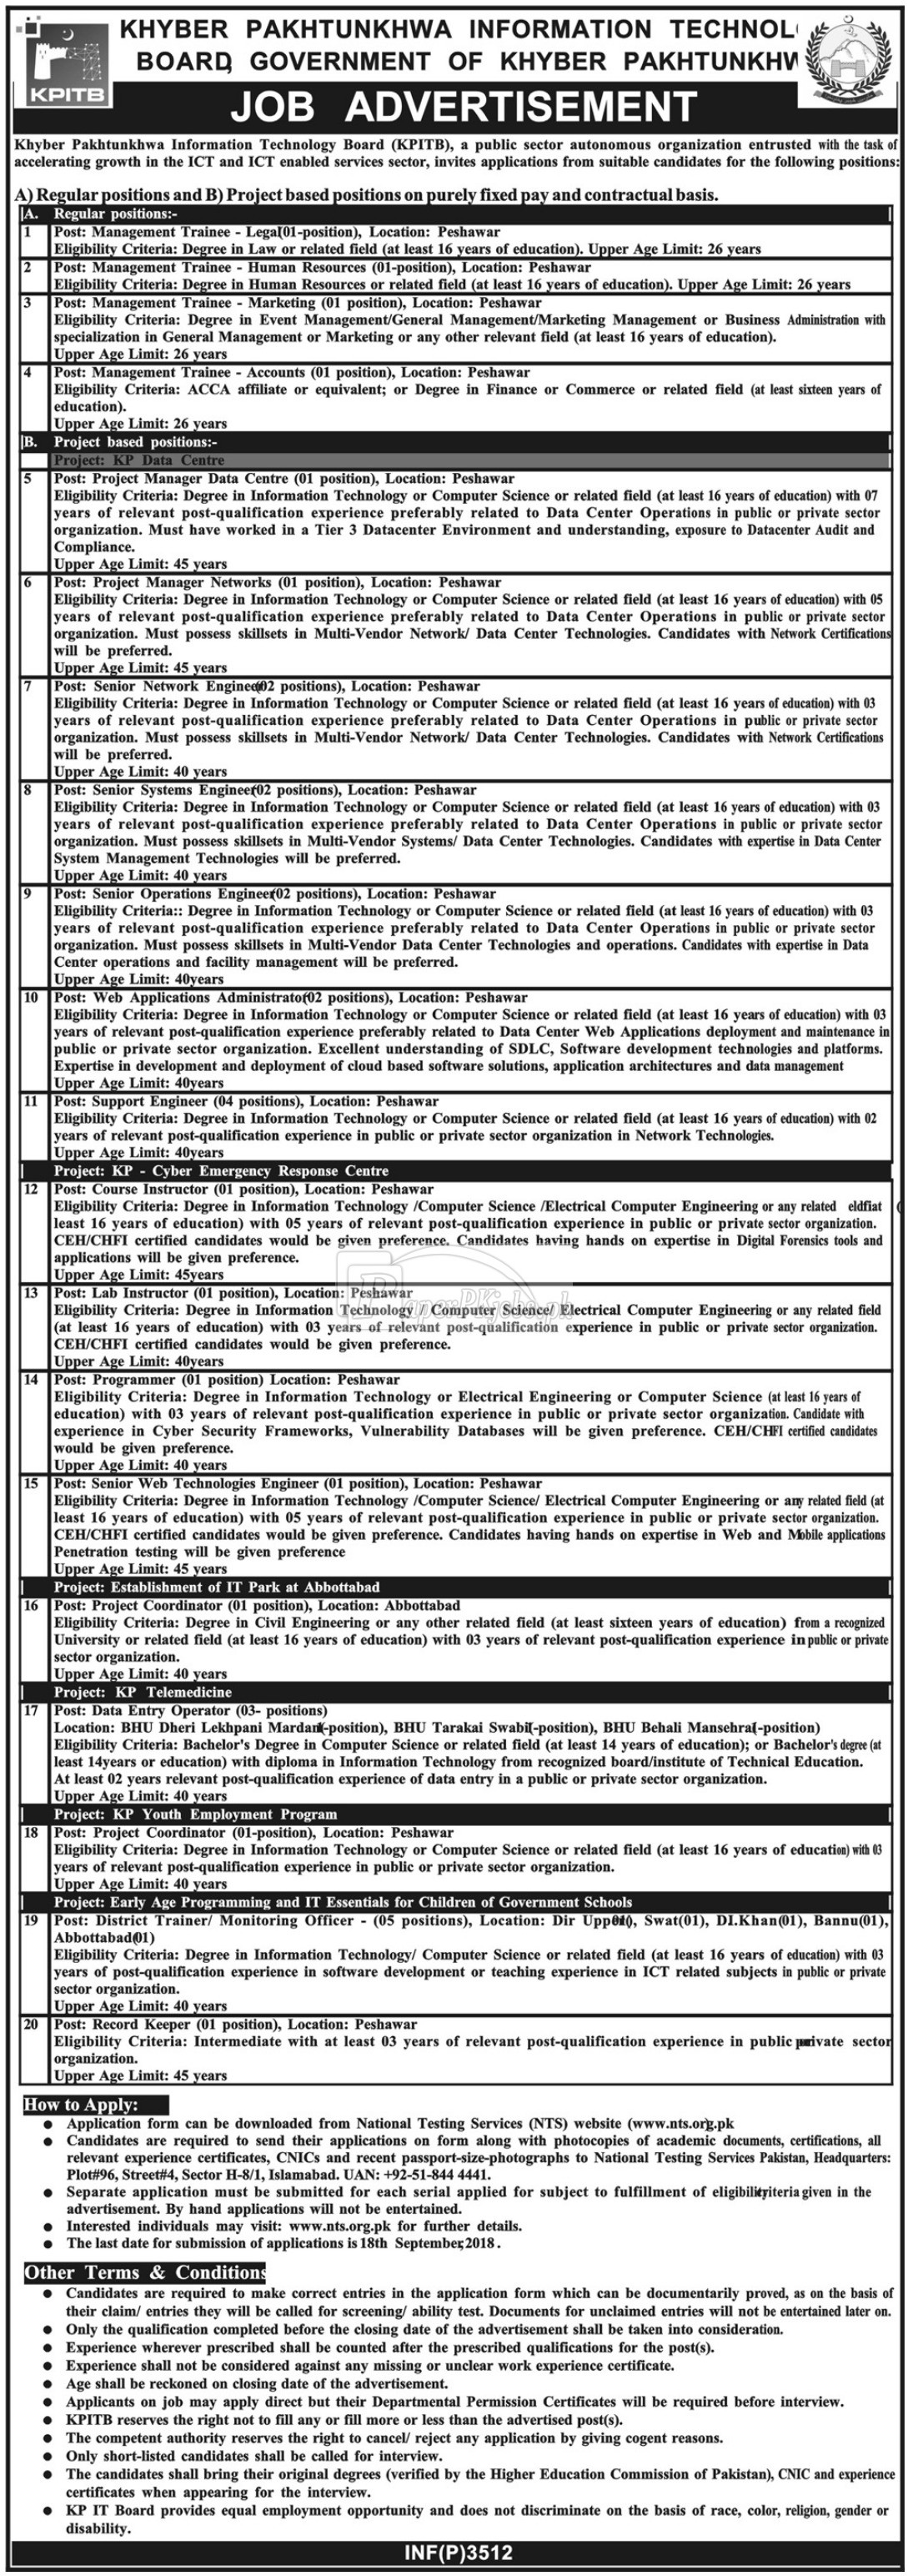 KPK Information Technology Board KPITB Jobs 2018